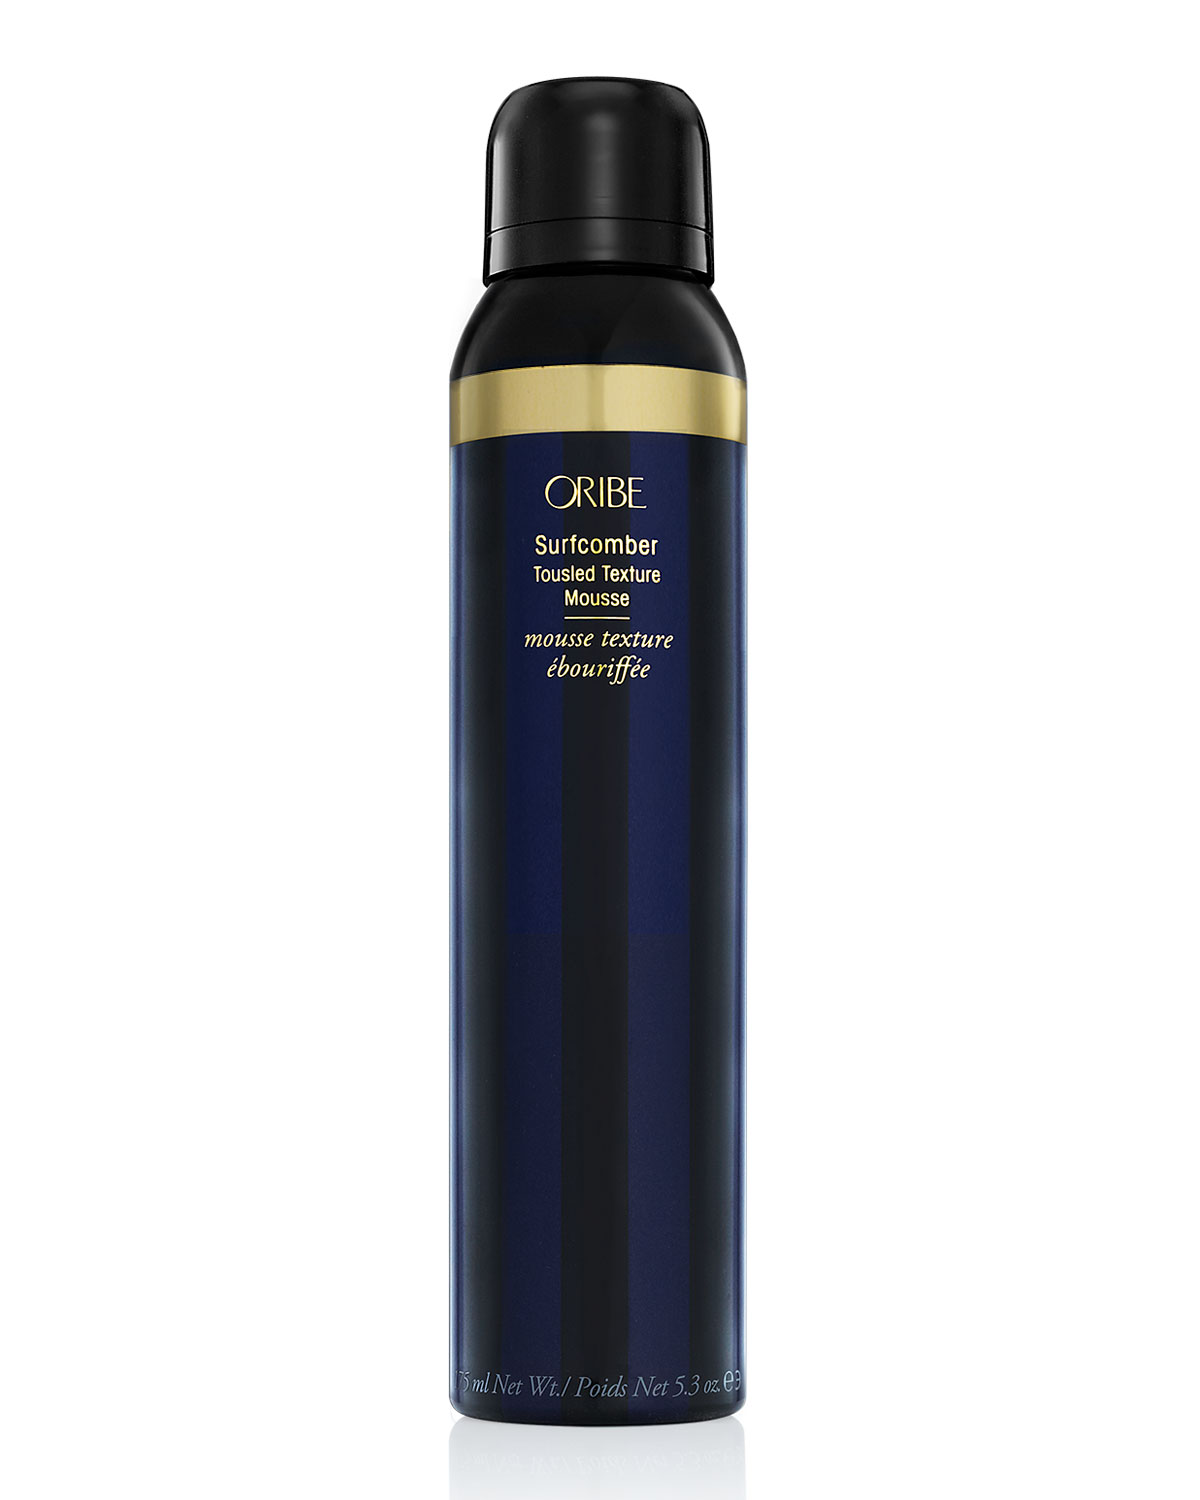 Oribe Surfcomber Tousled Texture Mousse, 5.7 oz.